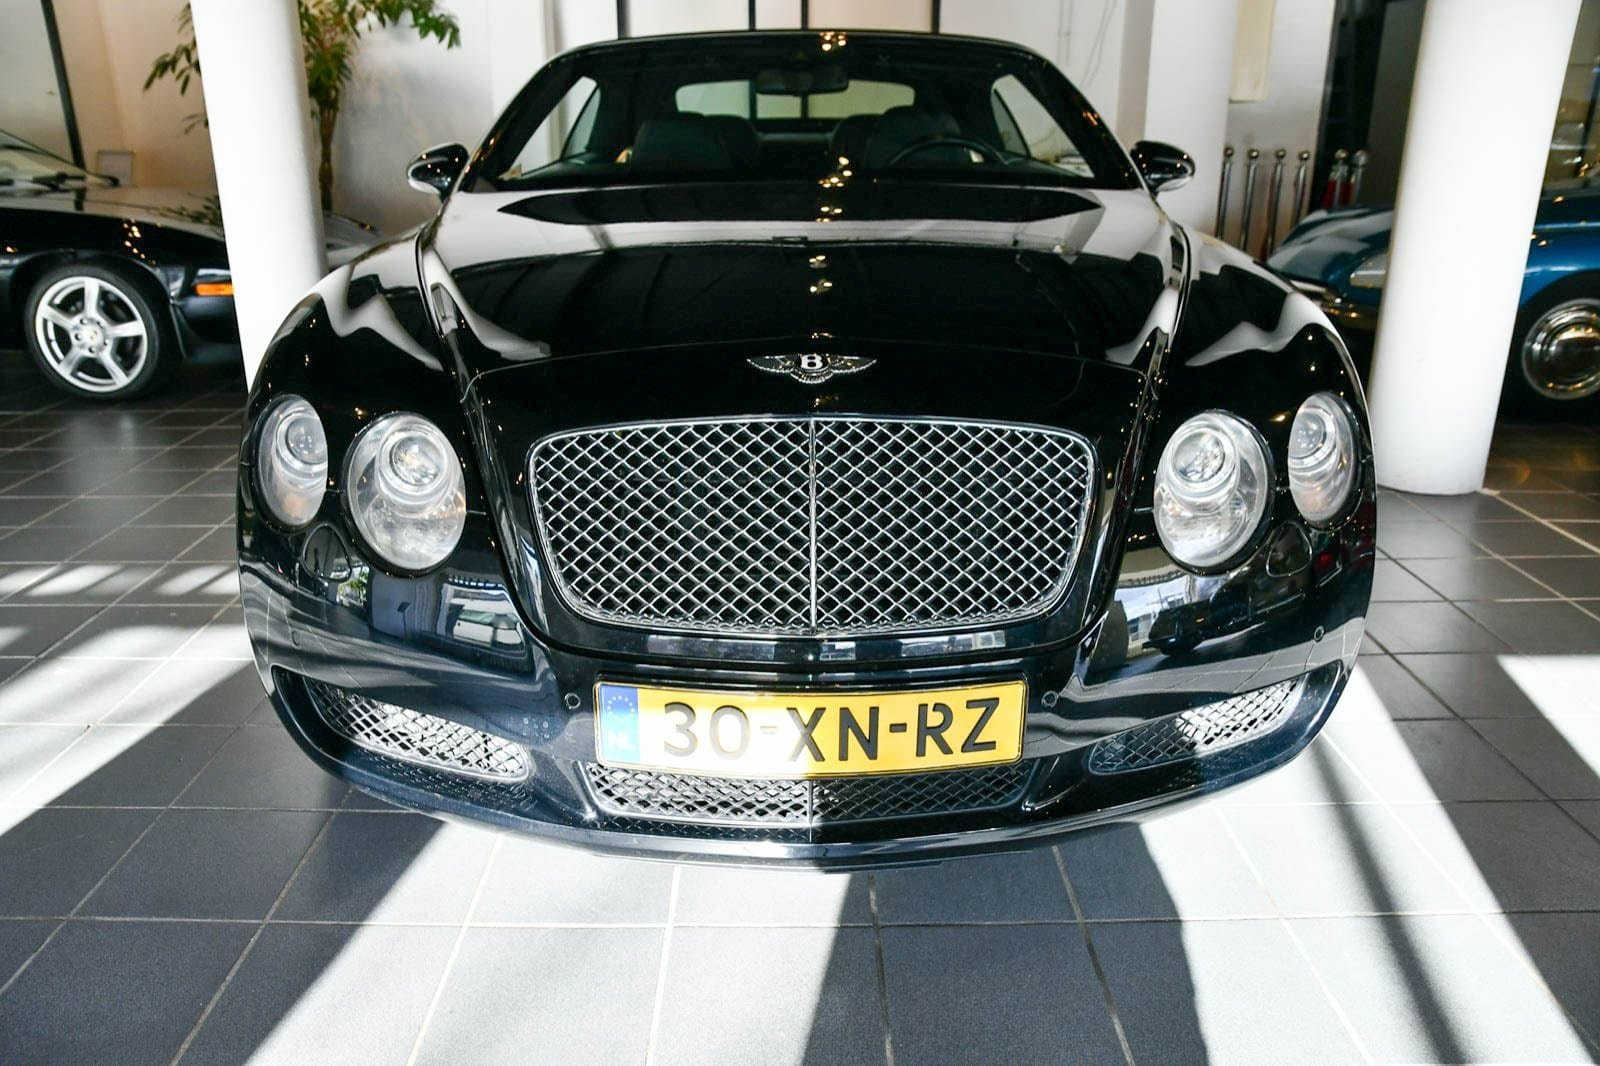 Bentley Continental GT 6.0 W12 GTC Convertible 2007 For Sale by Auction (picture 2 of 6)